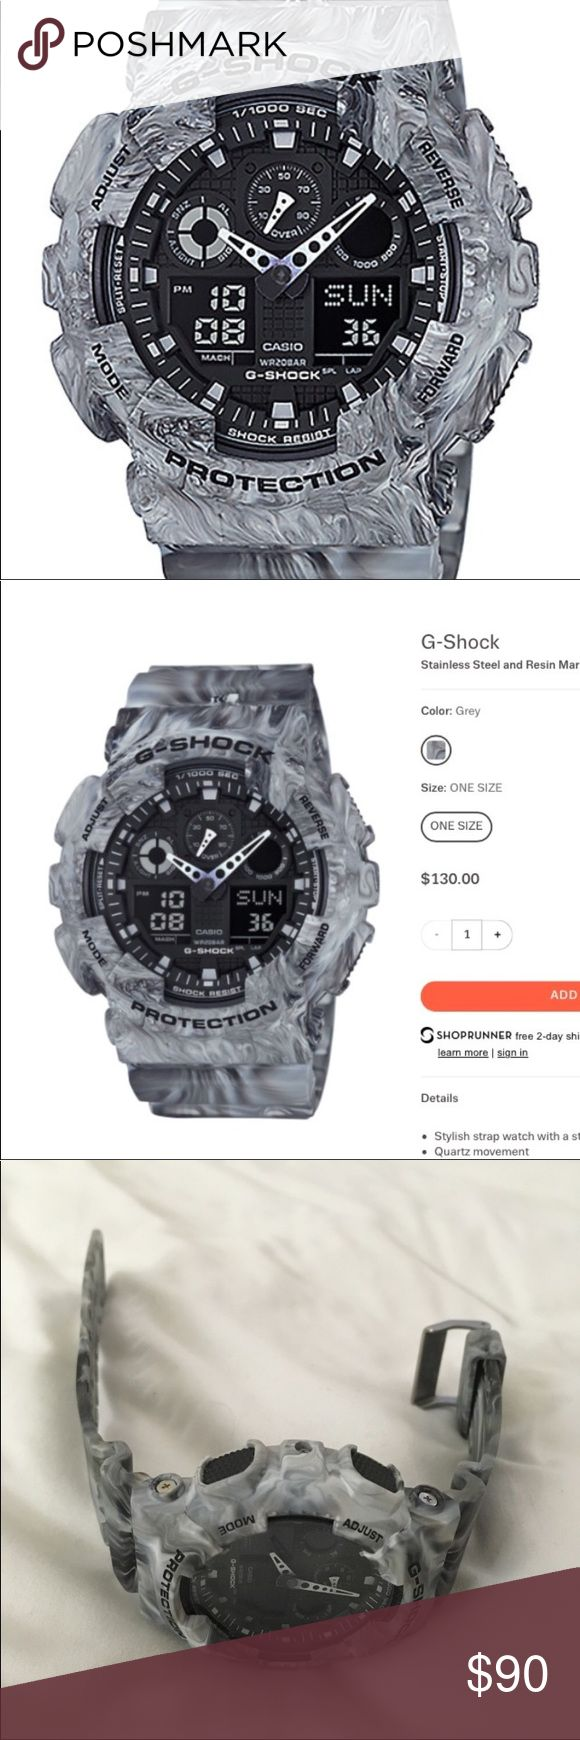 G shock marble watch Brand new G shock marble watch. Perfect condition: worth $130.00 g shock Accessories Watches